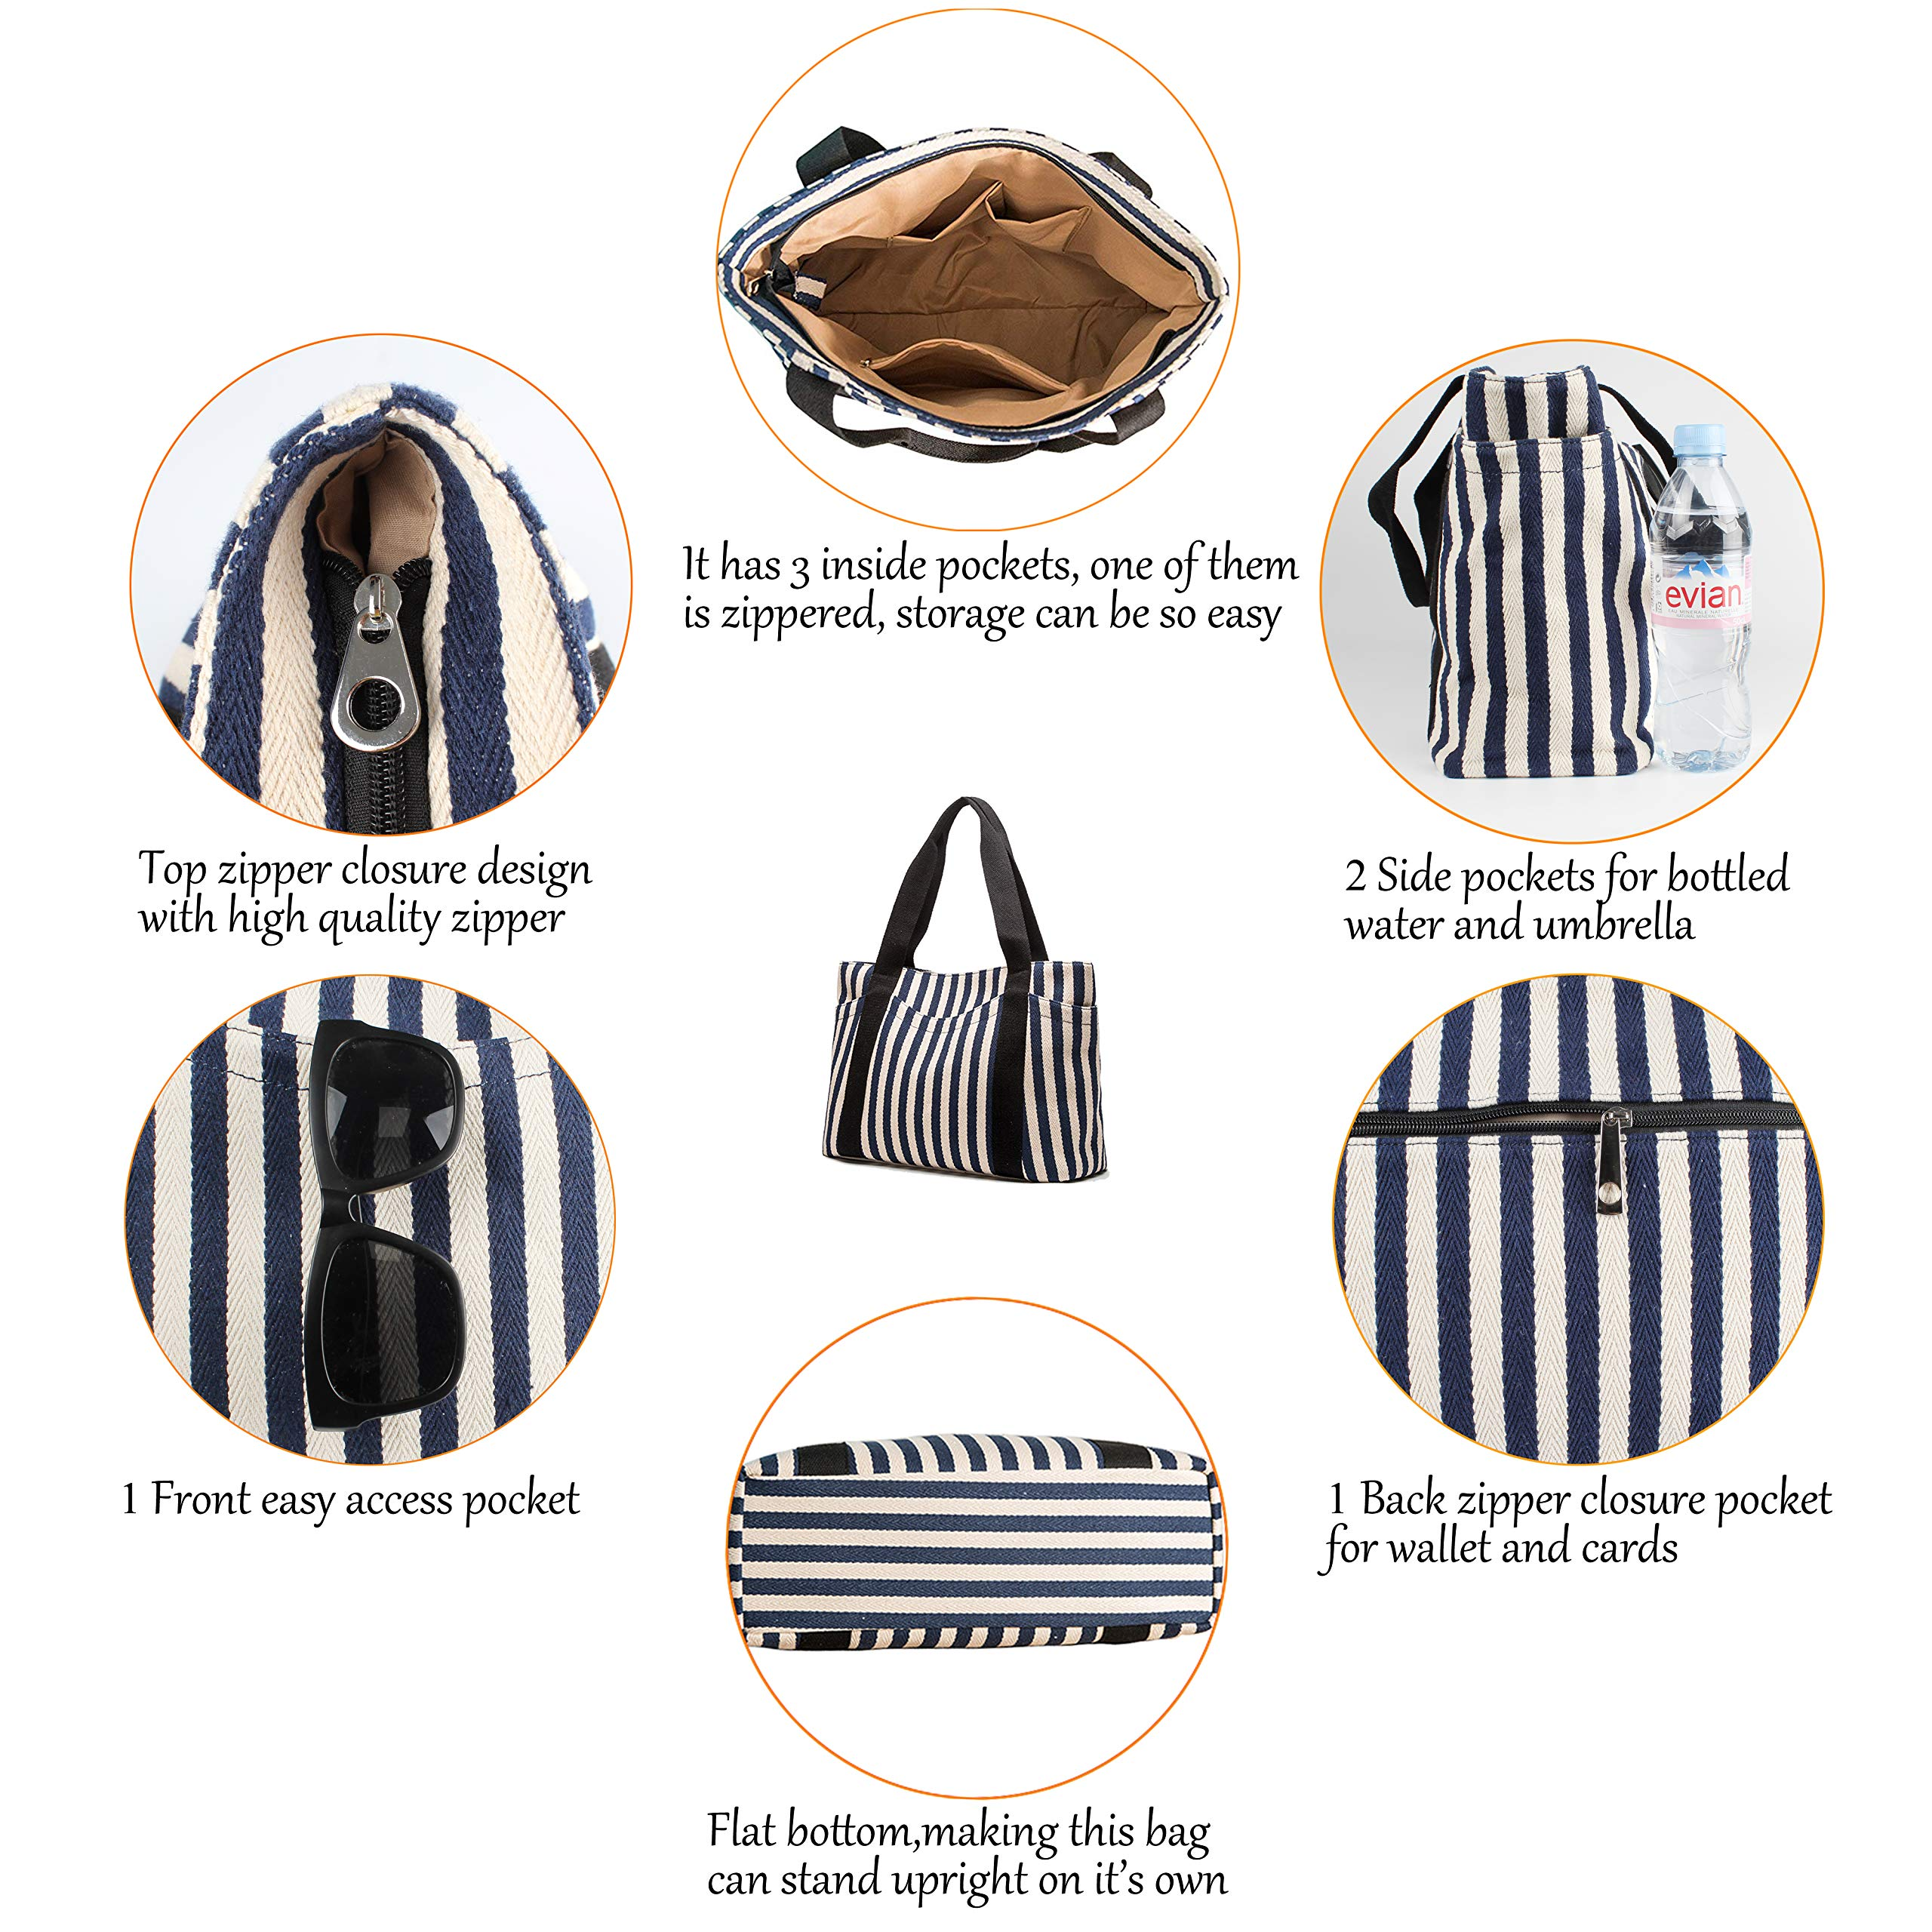 Canvas Tote Bag with Multiple Pocket/Zipper Closure Sholuder Bag/Travel Bag for Weekend/7 Pocket/Perfect Bag for Gift by sornean (Image #2)